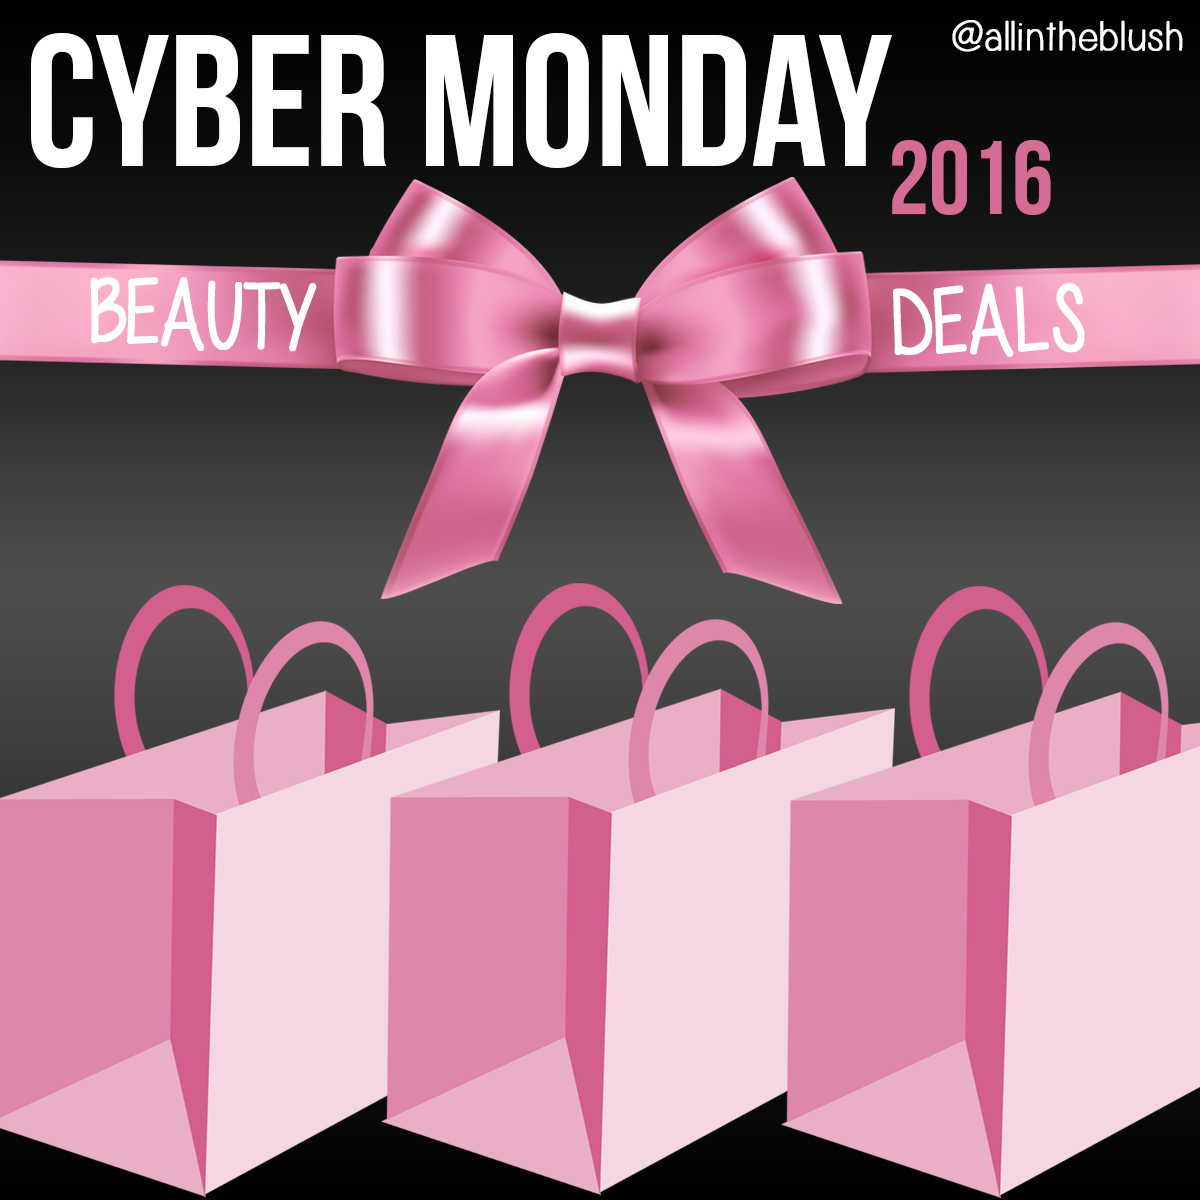 Oct 13, · Stay with Creative Bloq to get the best Amazon Black Friday and Cyber Monday deals in We'll be working around the clock to curate all the best Amazon Black Friday and Cyber Monday deals for designers, artists and creatives on this page.